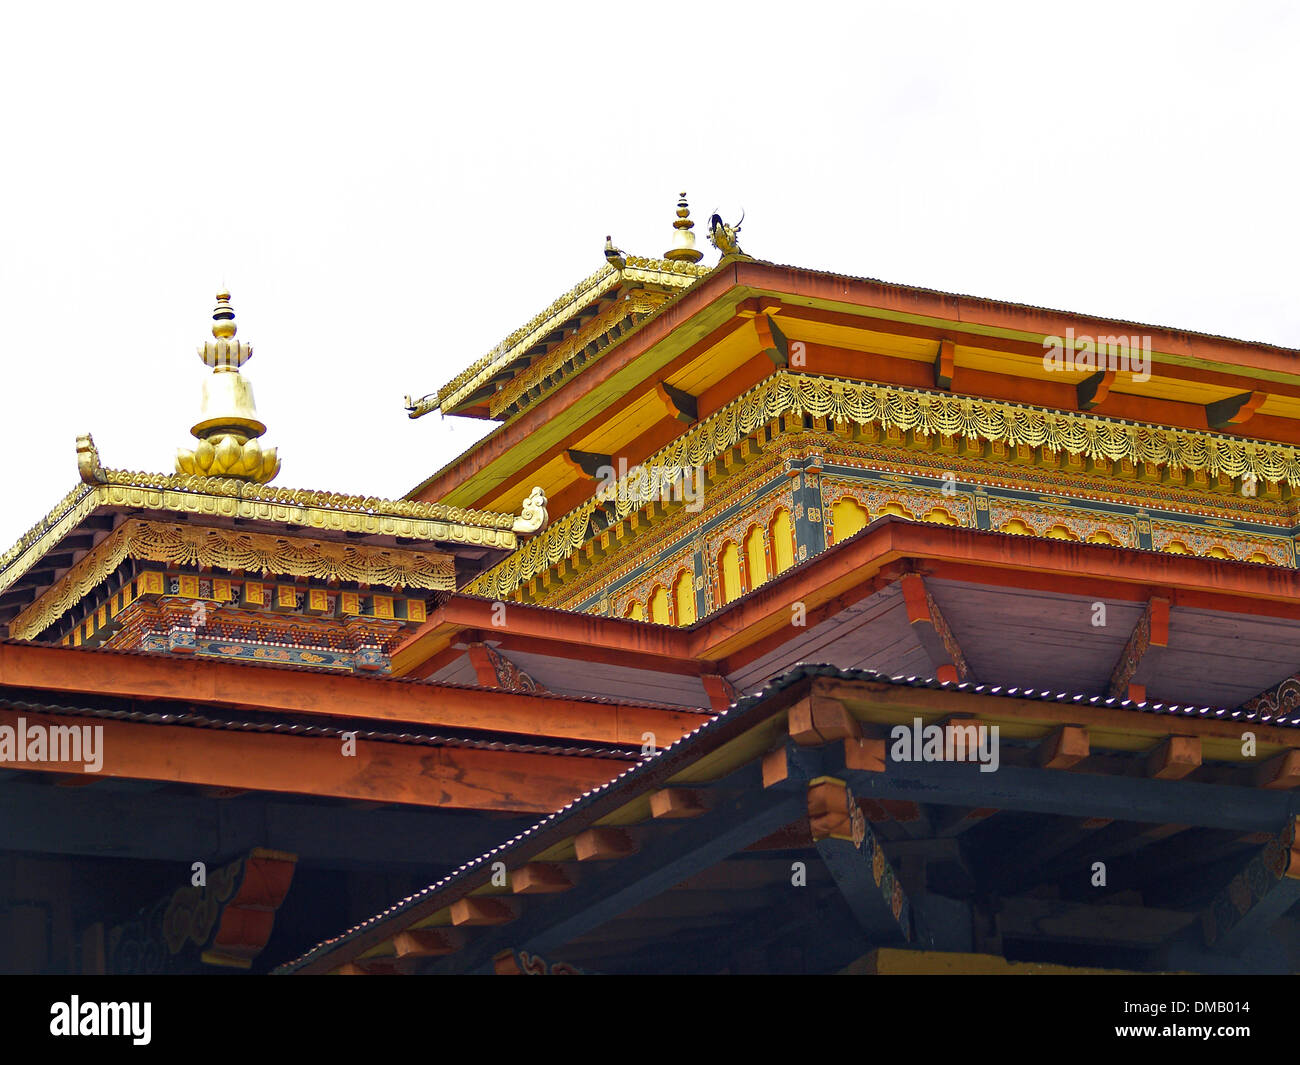 The gilded roof line of the Punakha Dzong,Bhutan - Stock Image